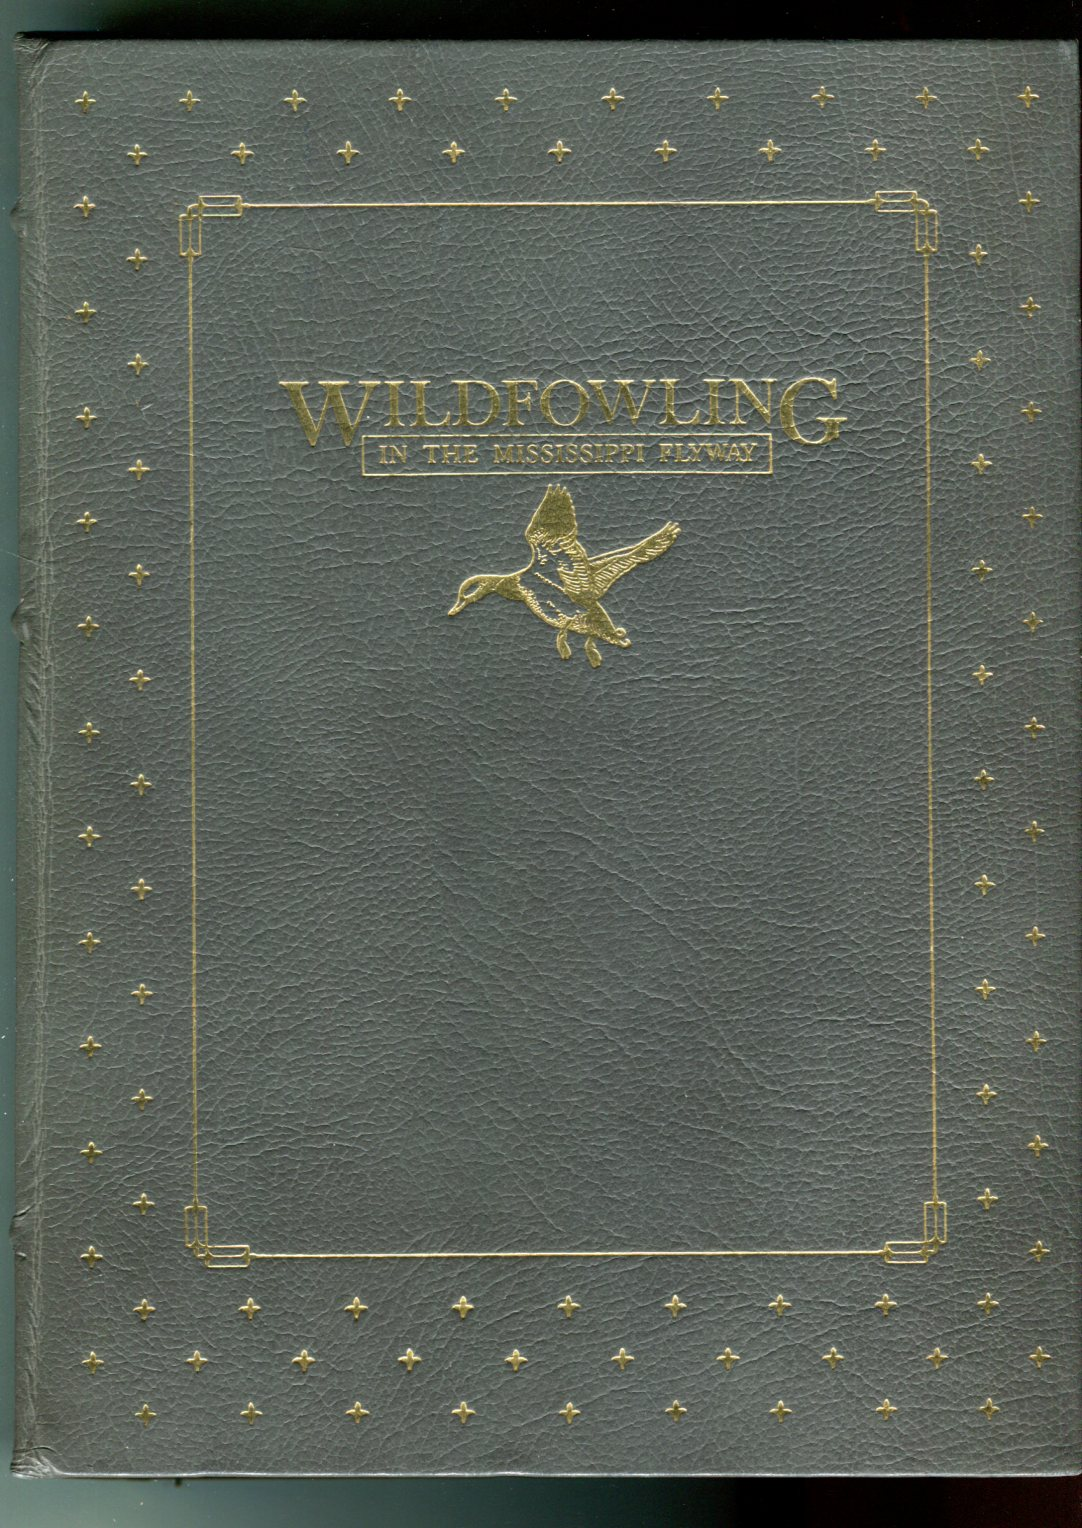 Image for Wildfowling in the Mississippi Flyway (The Premier Collection)